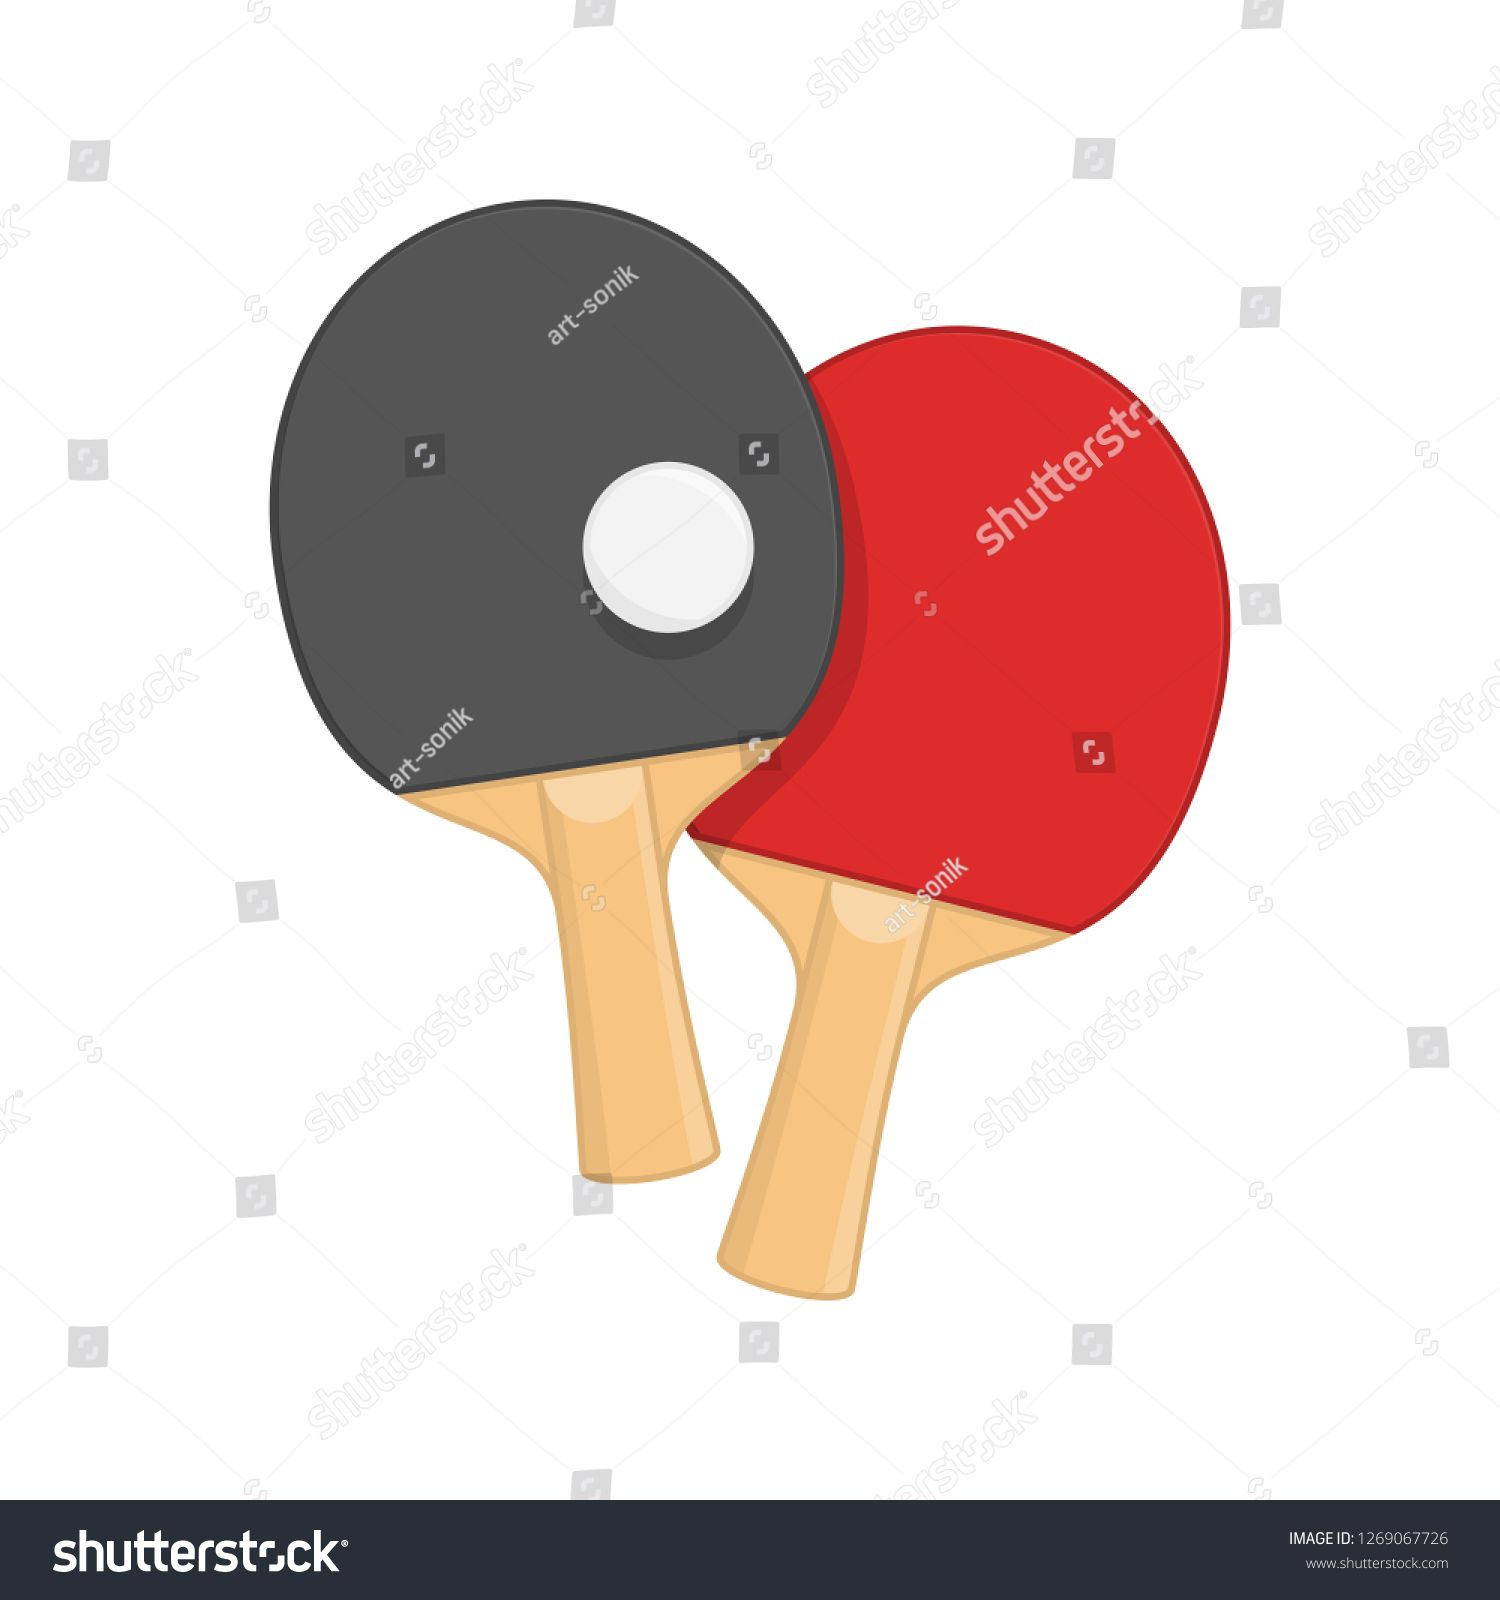 Two Ping Pong Rackets With Ball In Flat Style Racket For Playing Table Tennis Isolated On White Background Sports Equipment Co Ping Pong Rackets Play Tennis